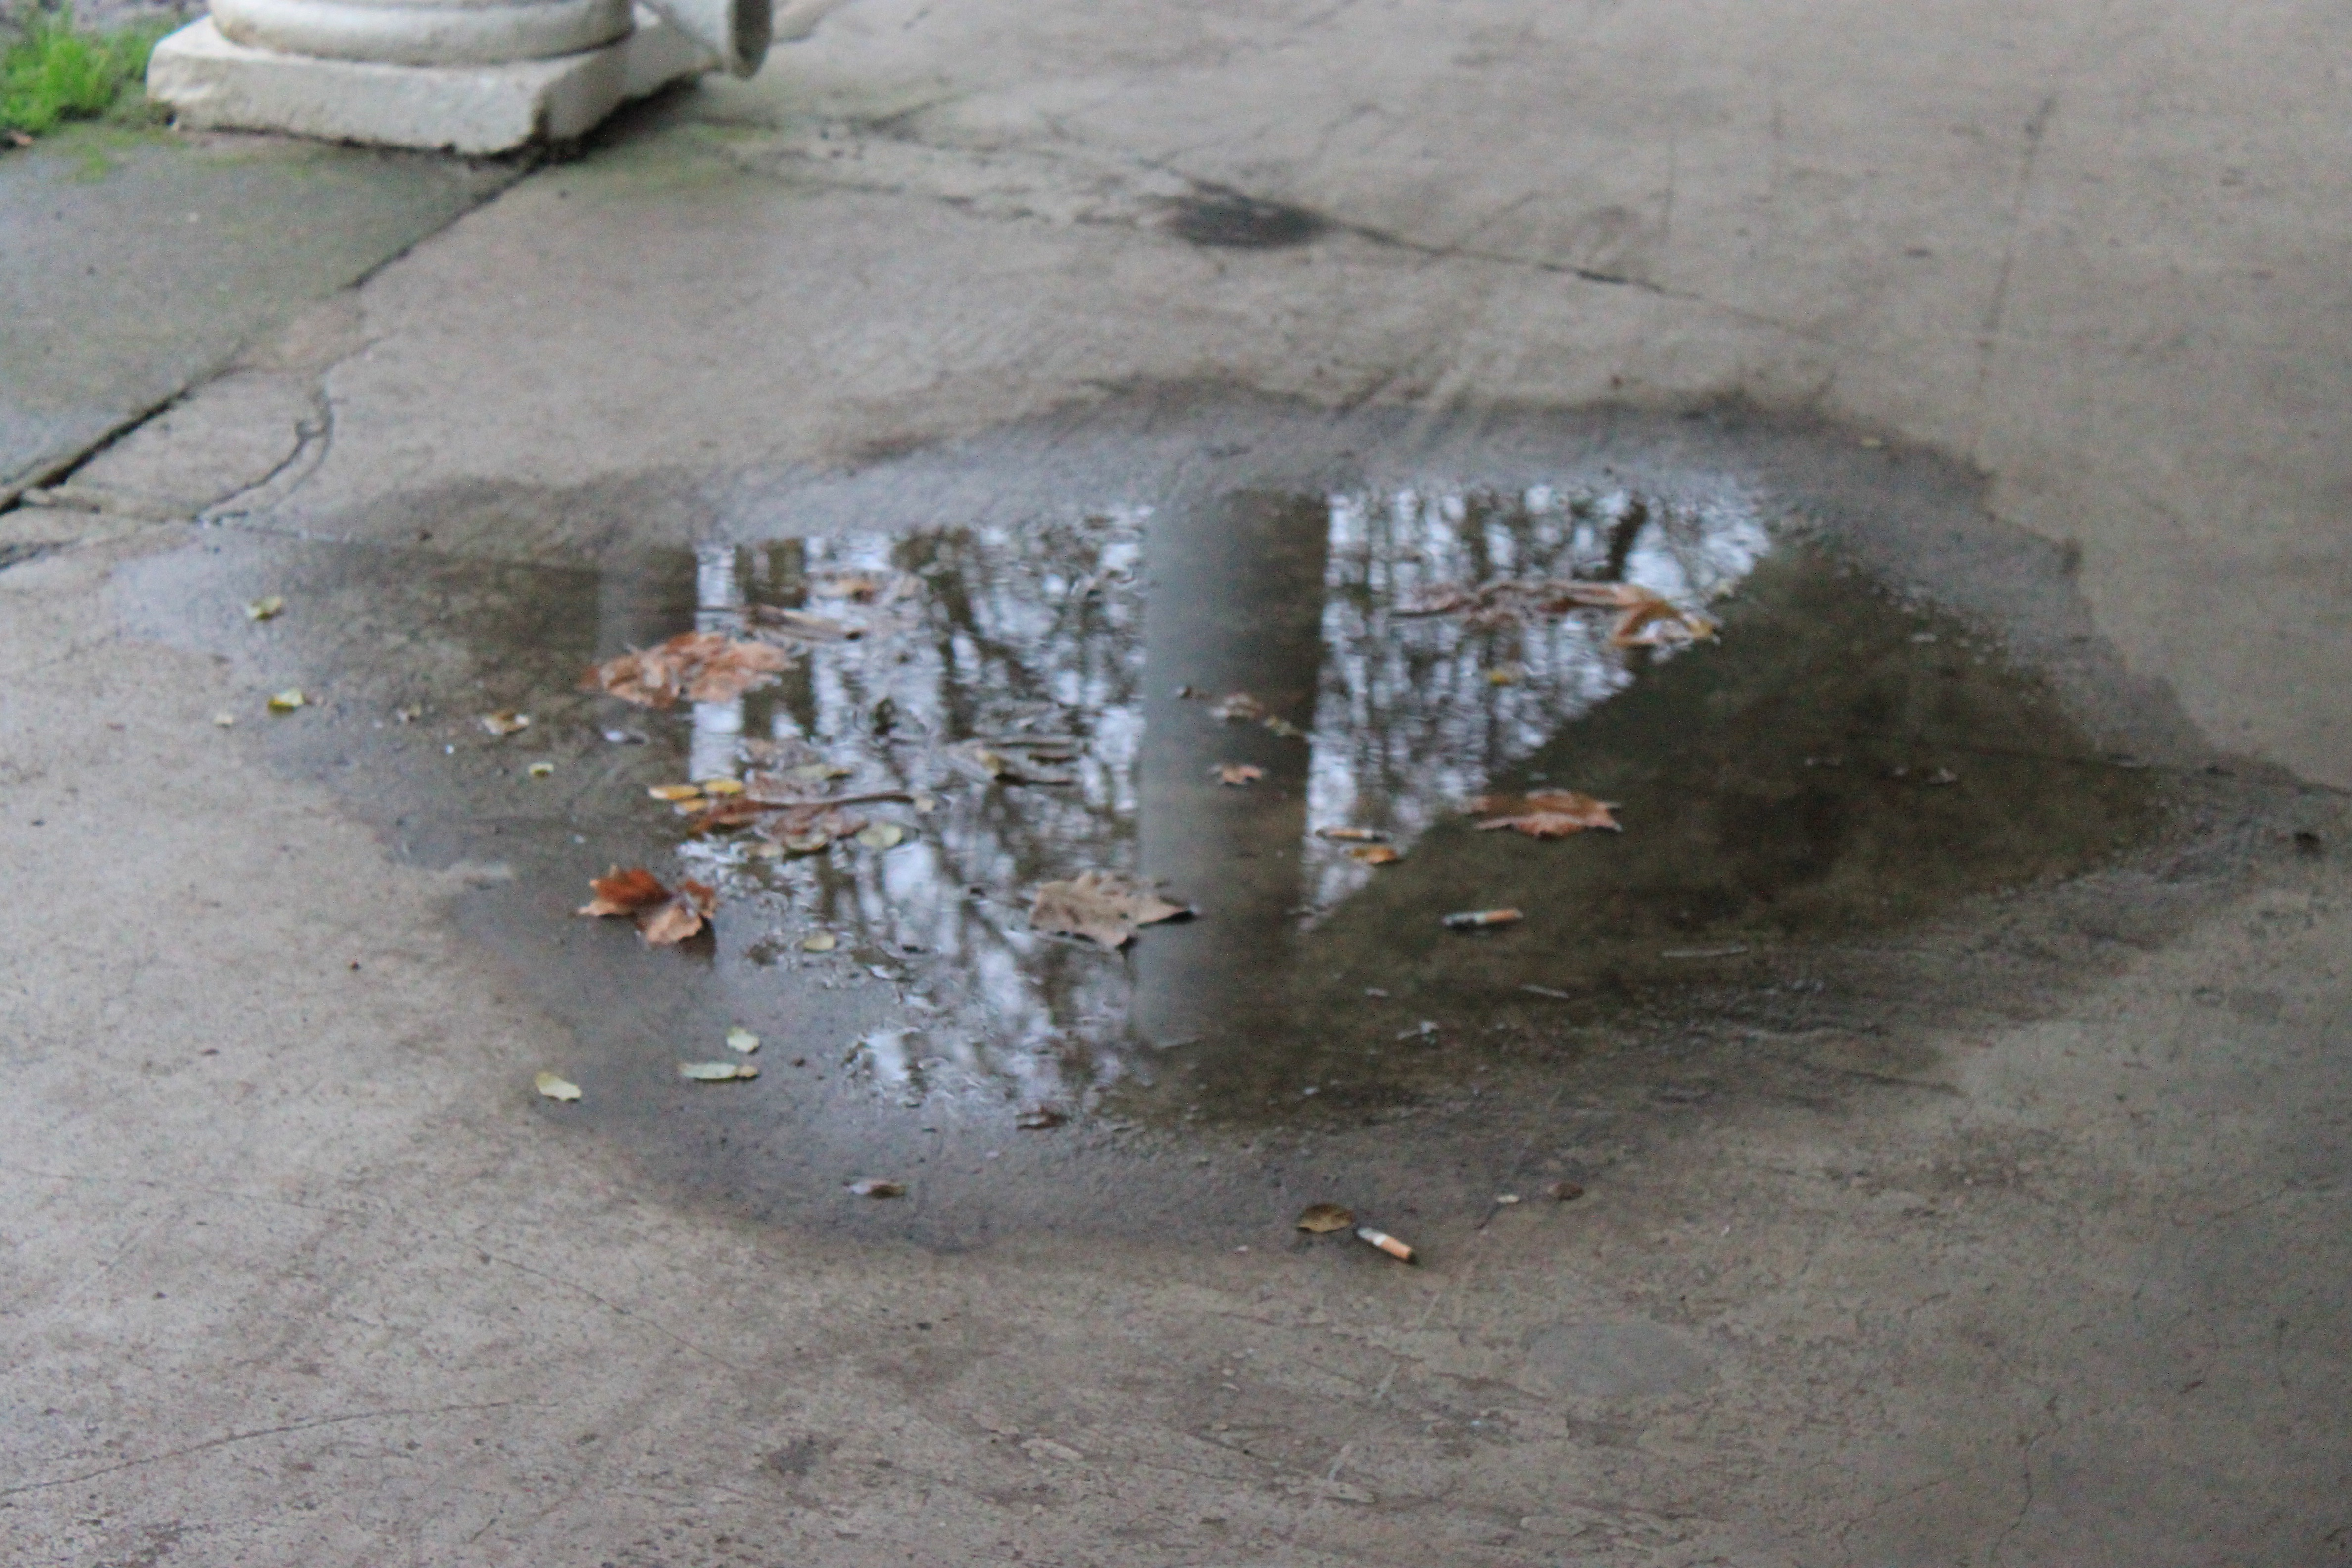 Item 6 A puddle